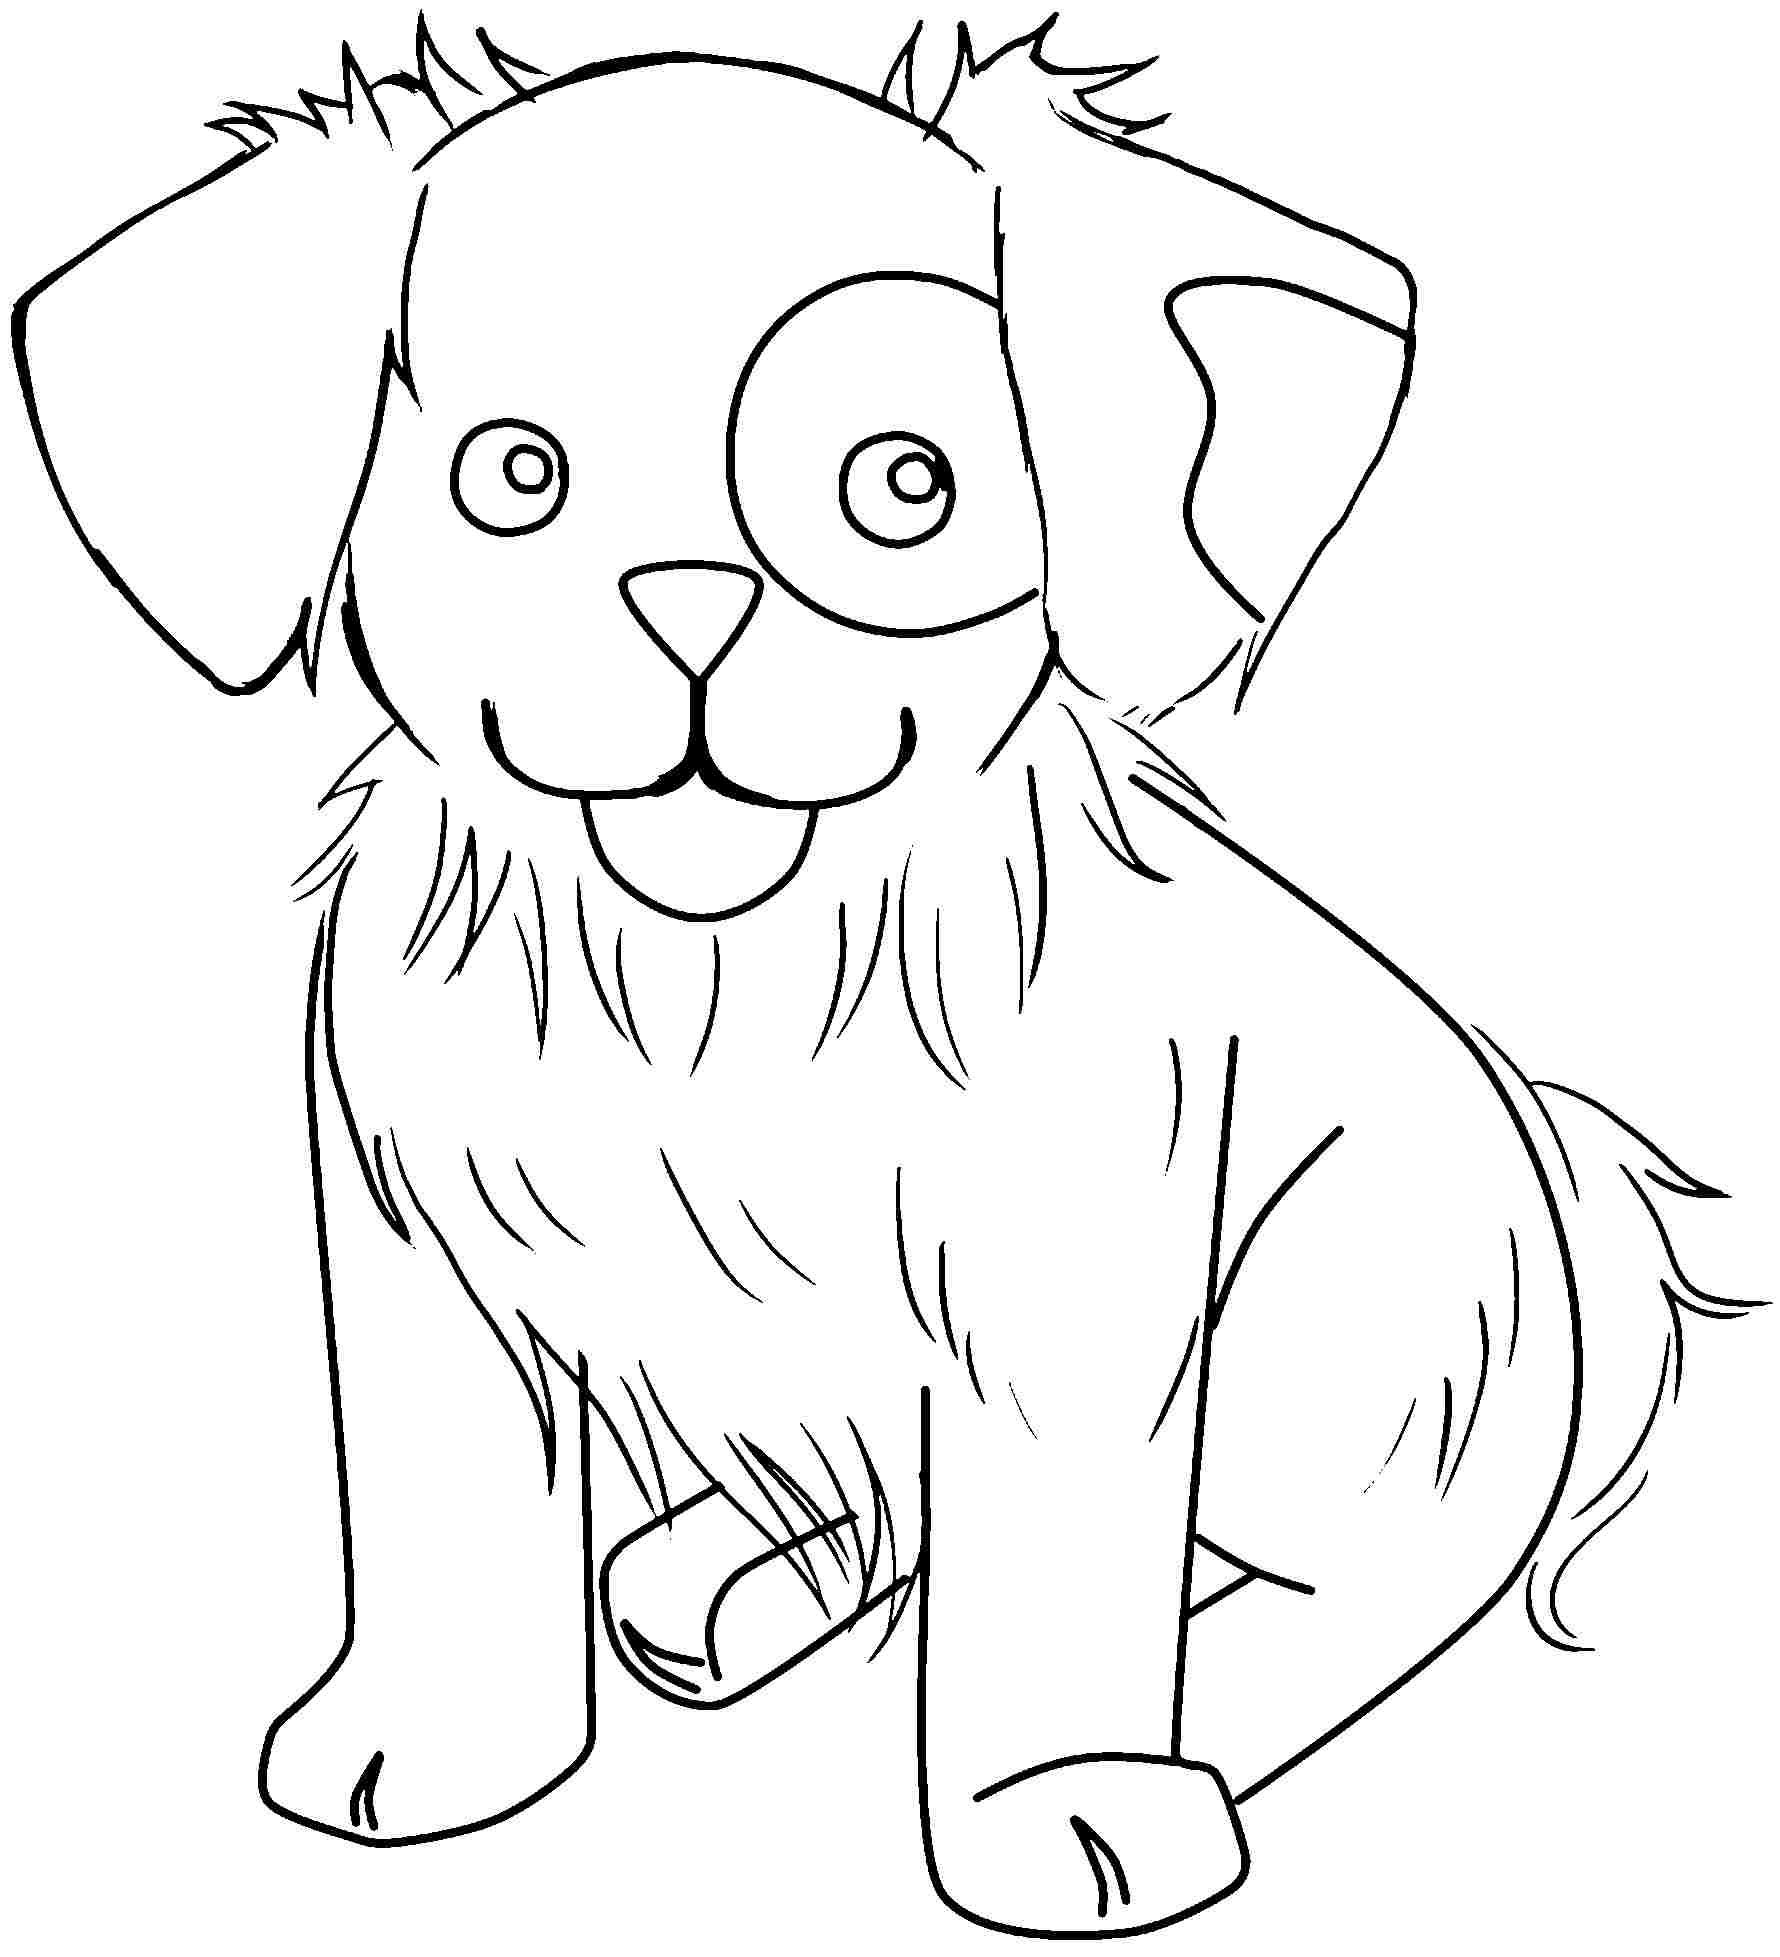 Gallery Images Of Coloring Pages Animal